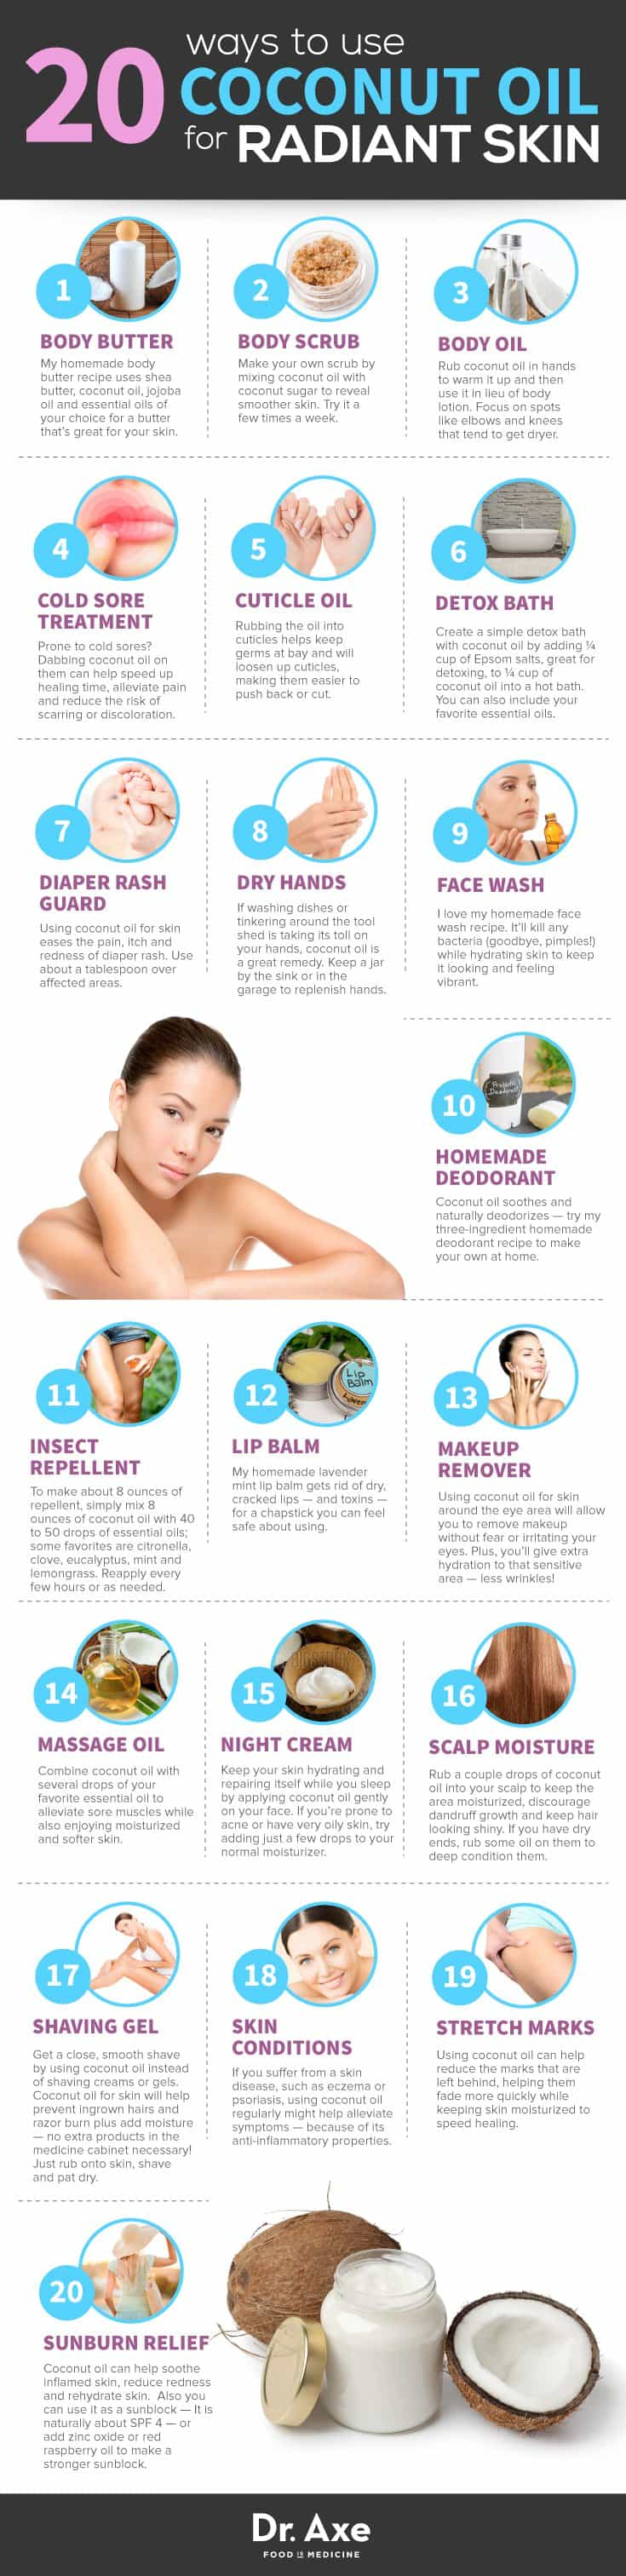 20 Radiant Ways To Use Coconut Oil For Radiant Skin